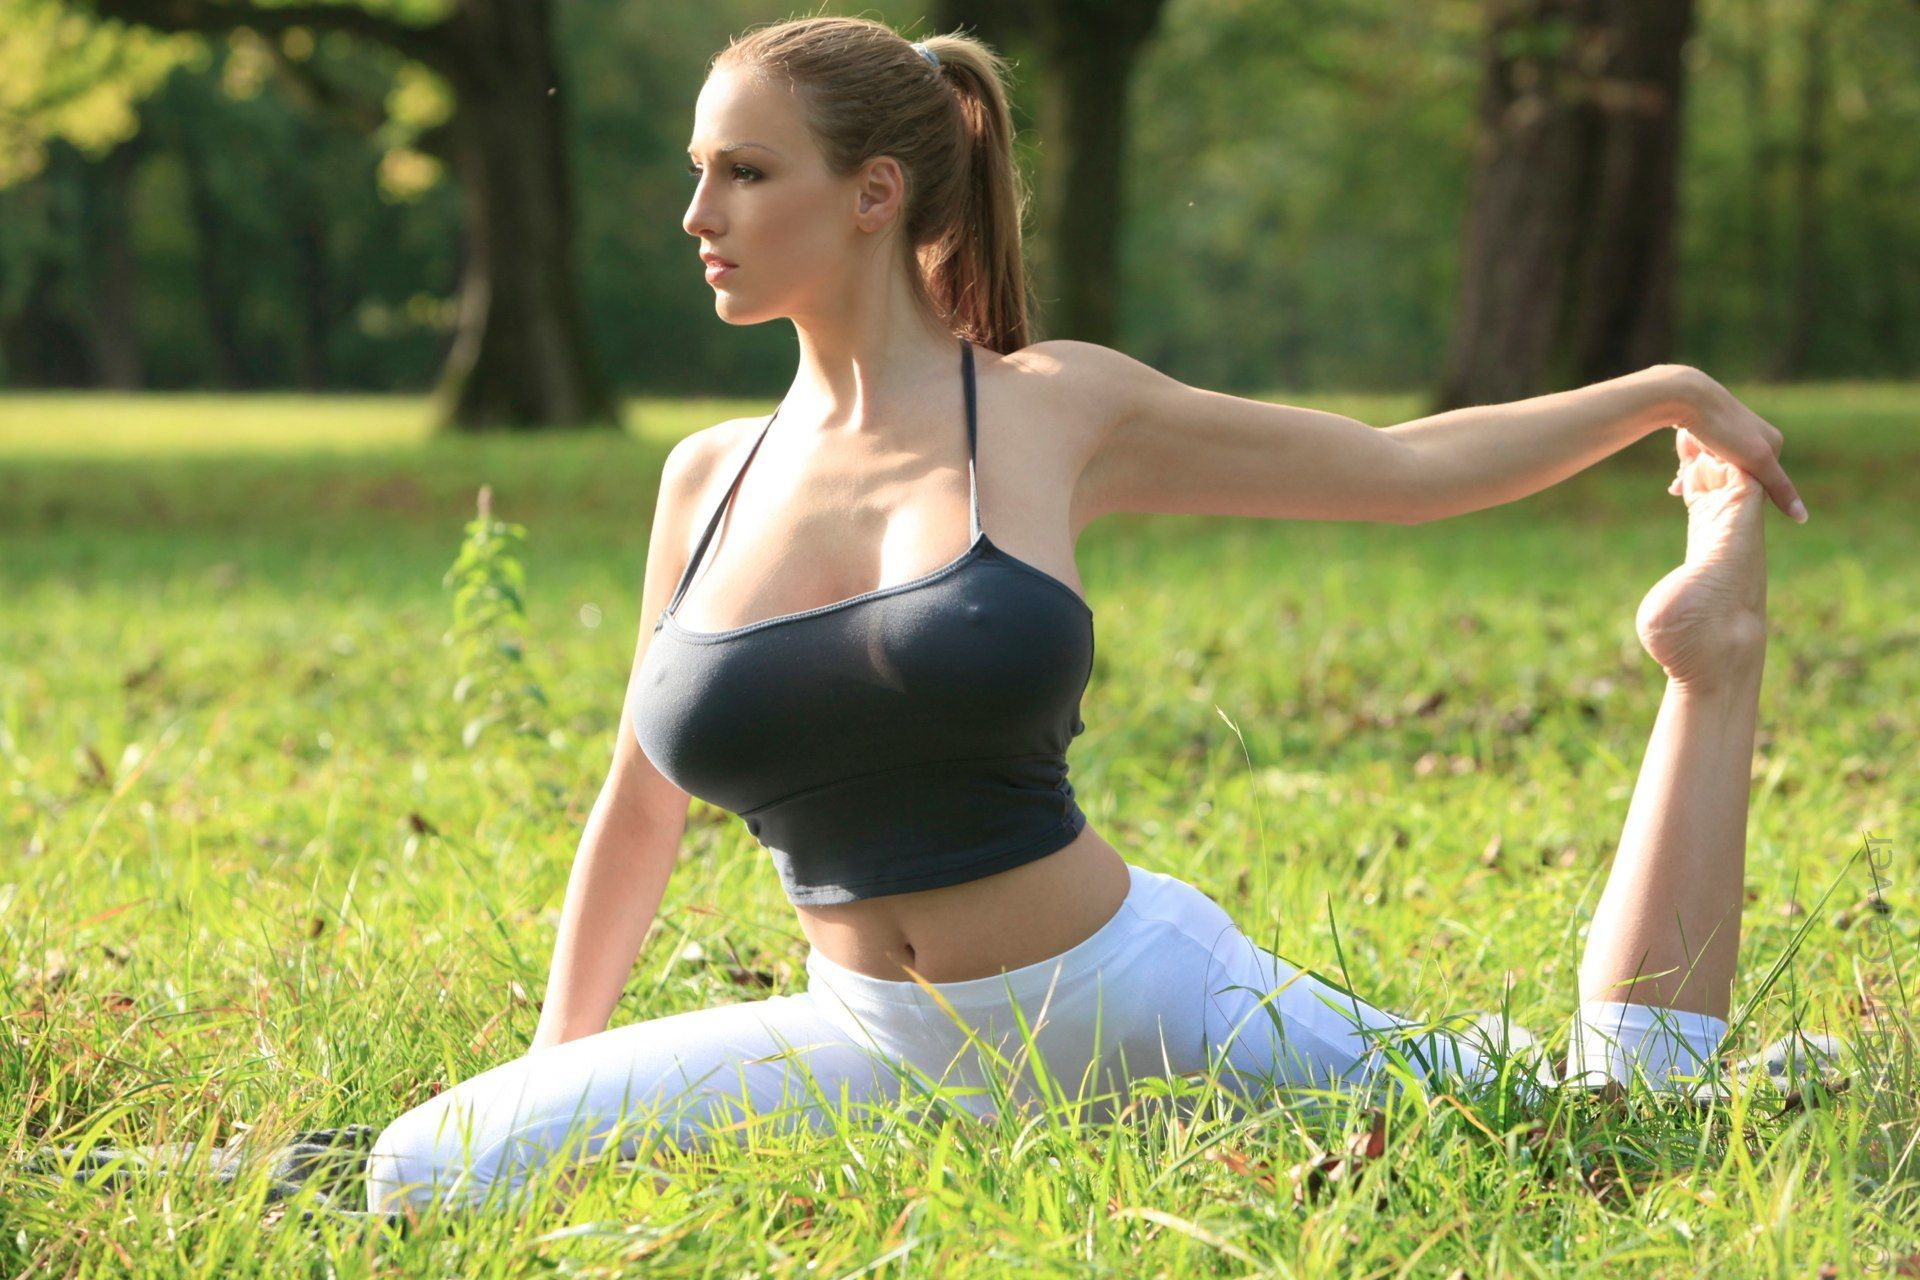 sexy yoga images - Google Search   Let\'s get physical   Pinterest